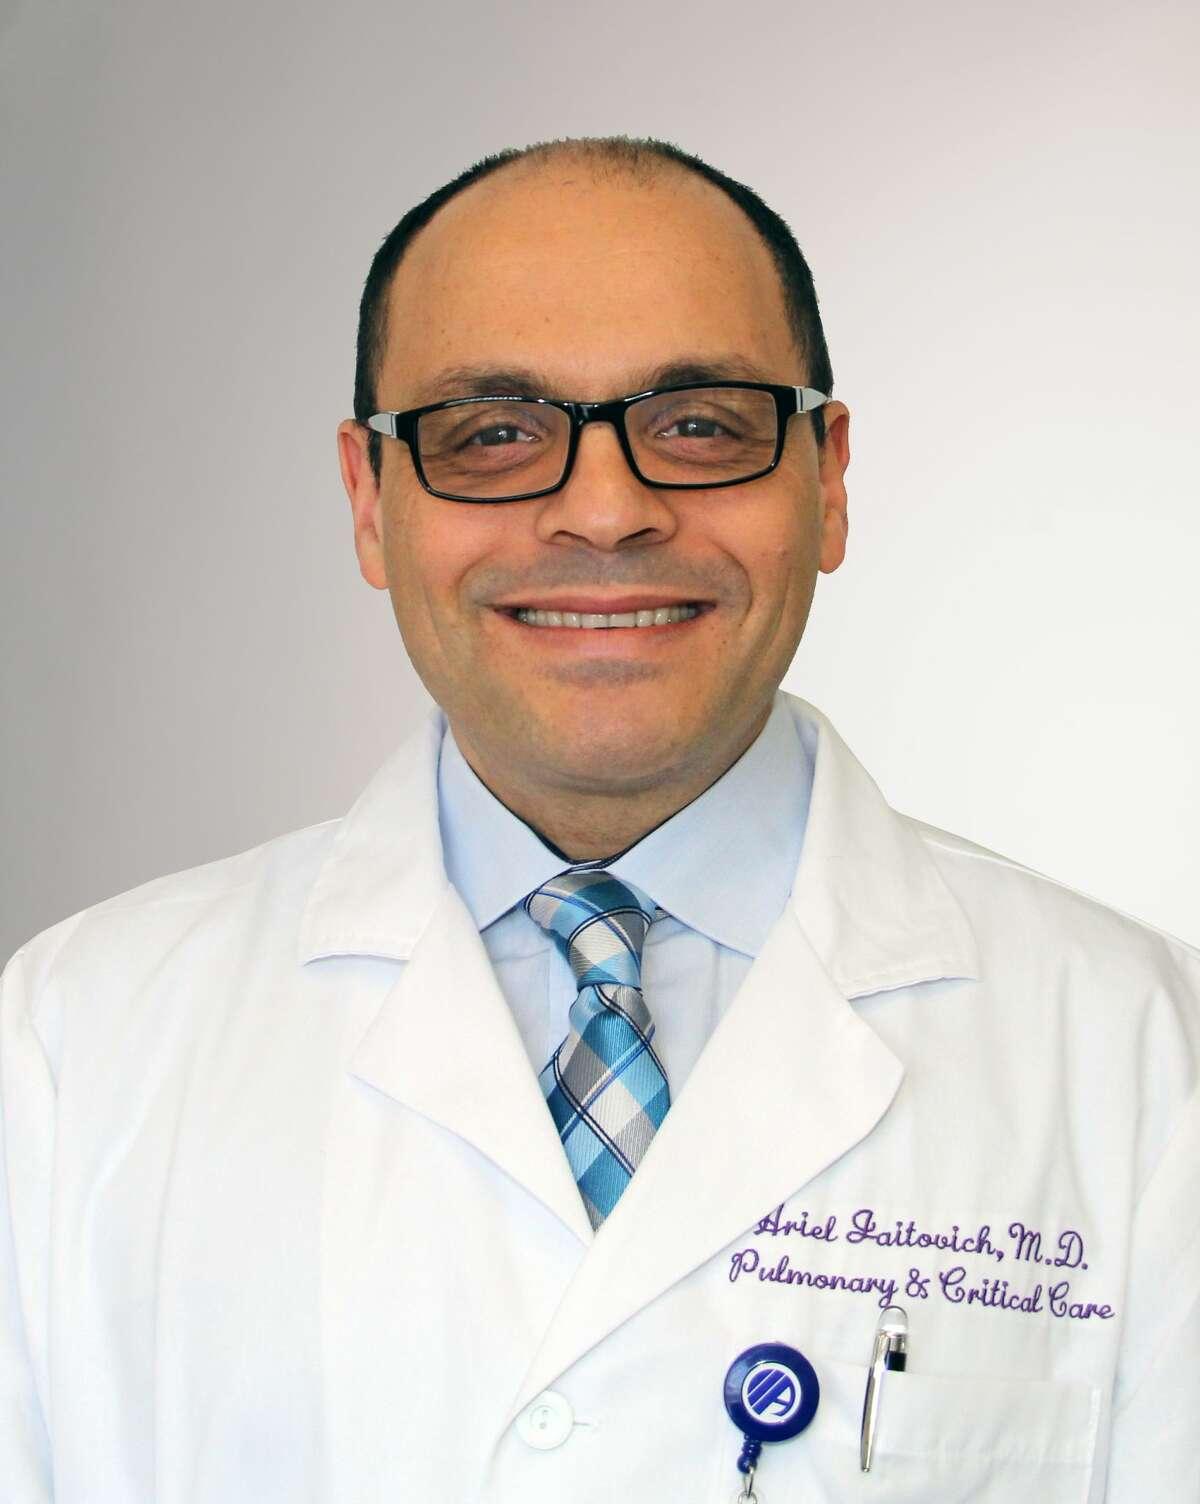 Dr. Ariel Jaitovich, a pulmonary and critical care doctor, has treated some of Albany Medical Center's most severe COVID-19 patients.